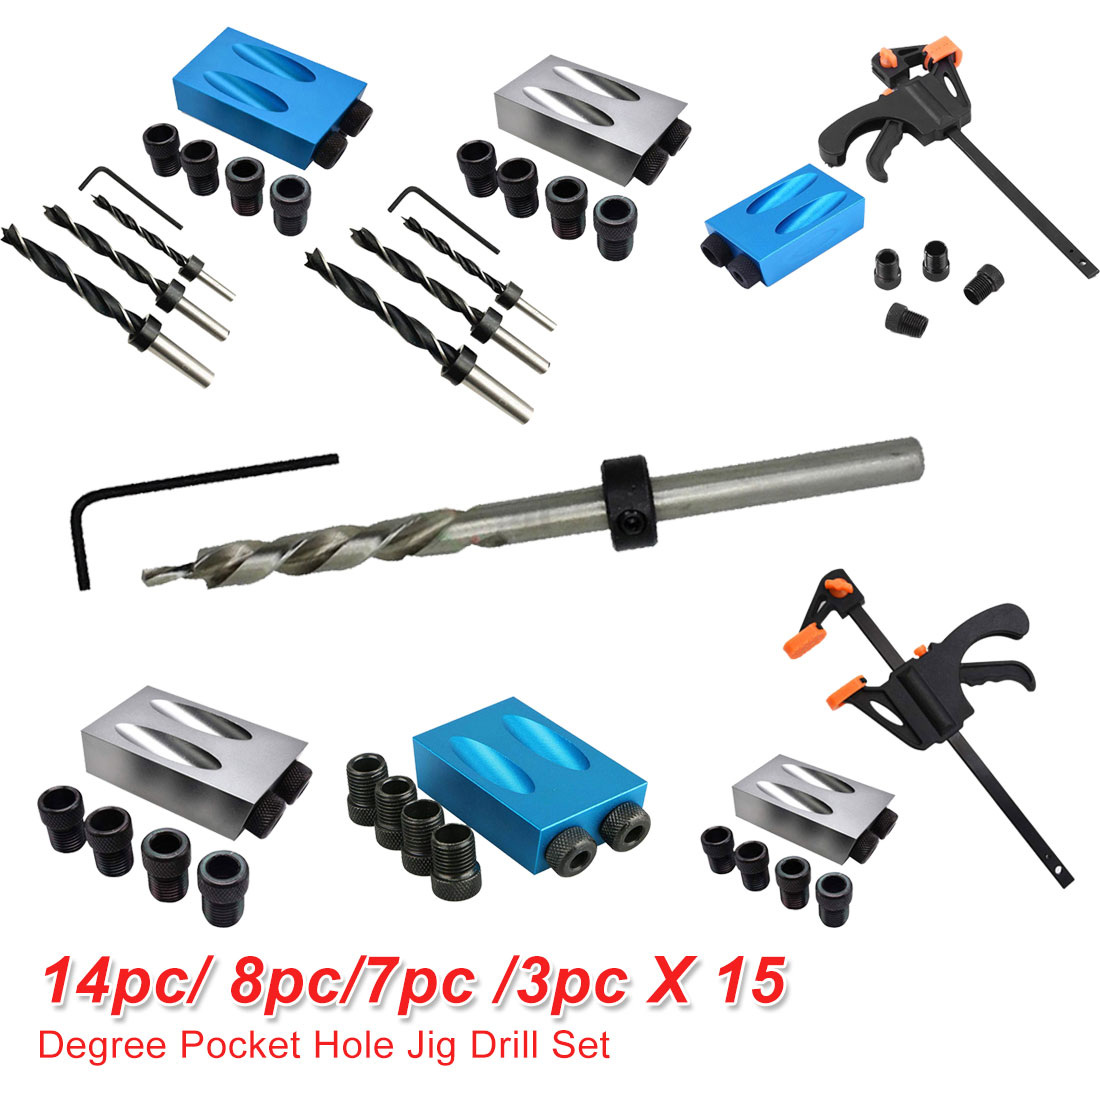 Pocket Hole Jig Drill 14pc/ 8pc/7pc /3pc 6mm 8mm 10mm Drill Guide Back Dowel Jig Kit Wood Drill For Woodworking Jointing